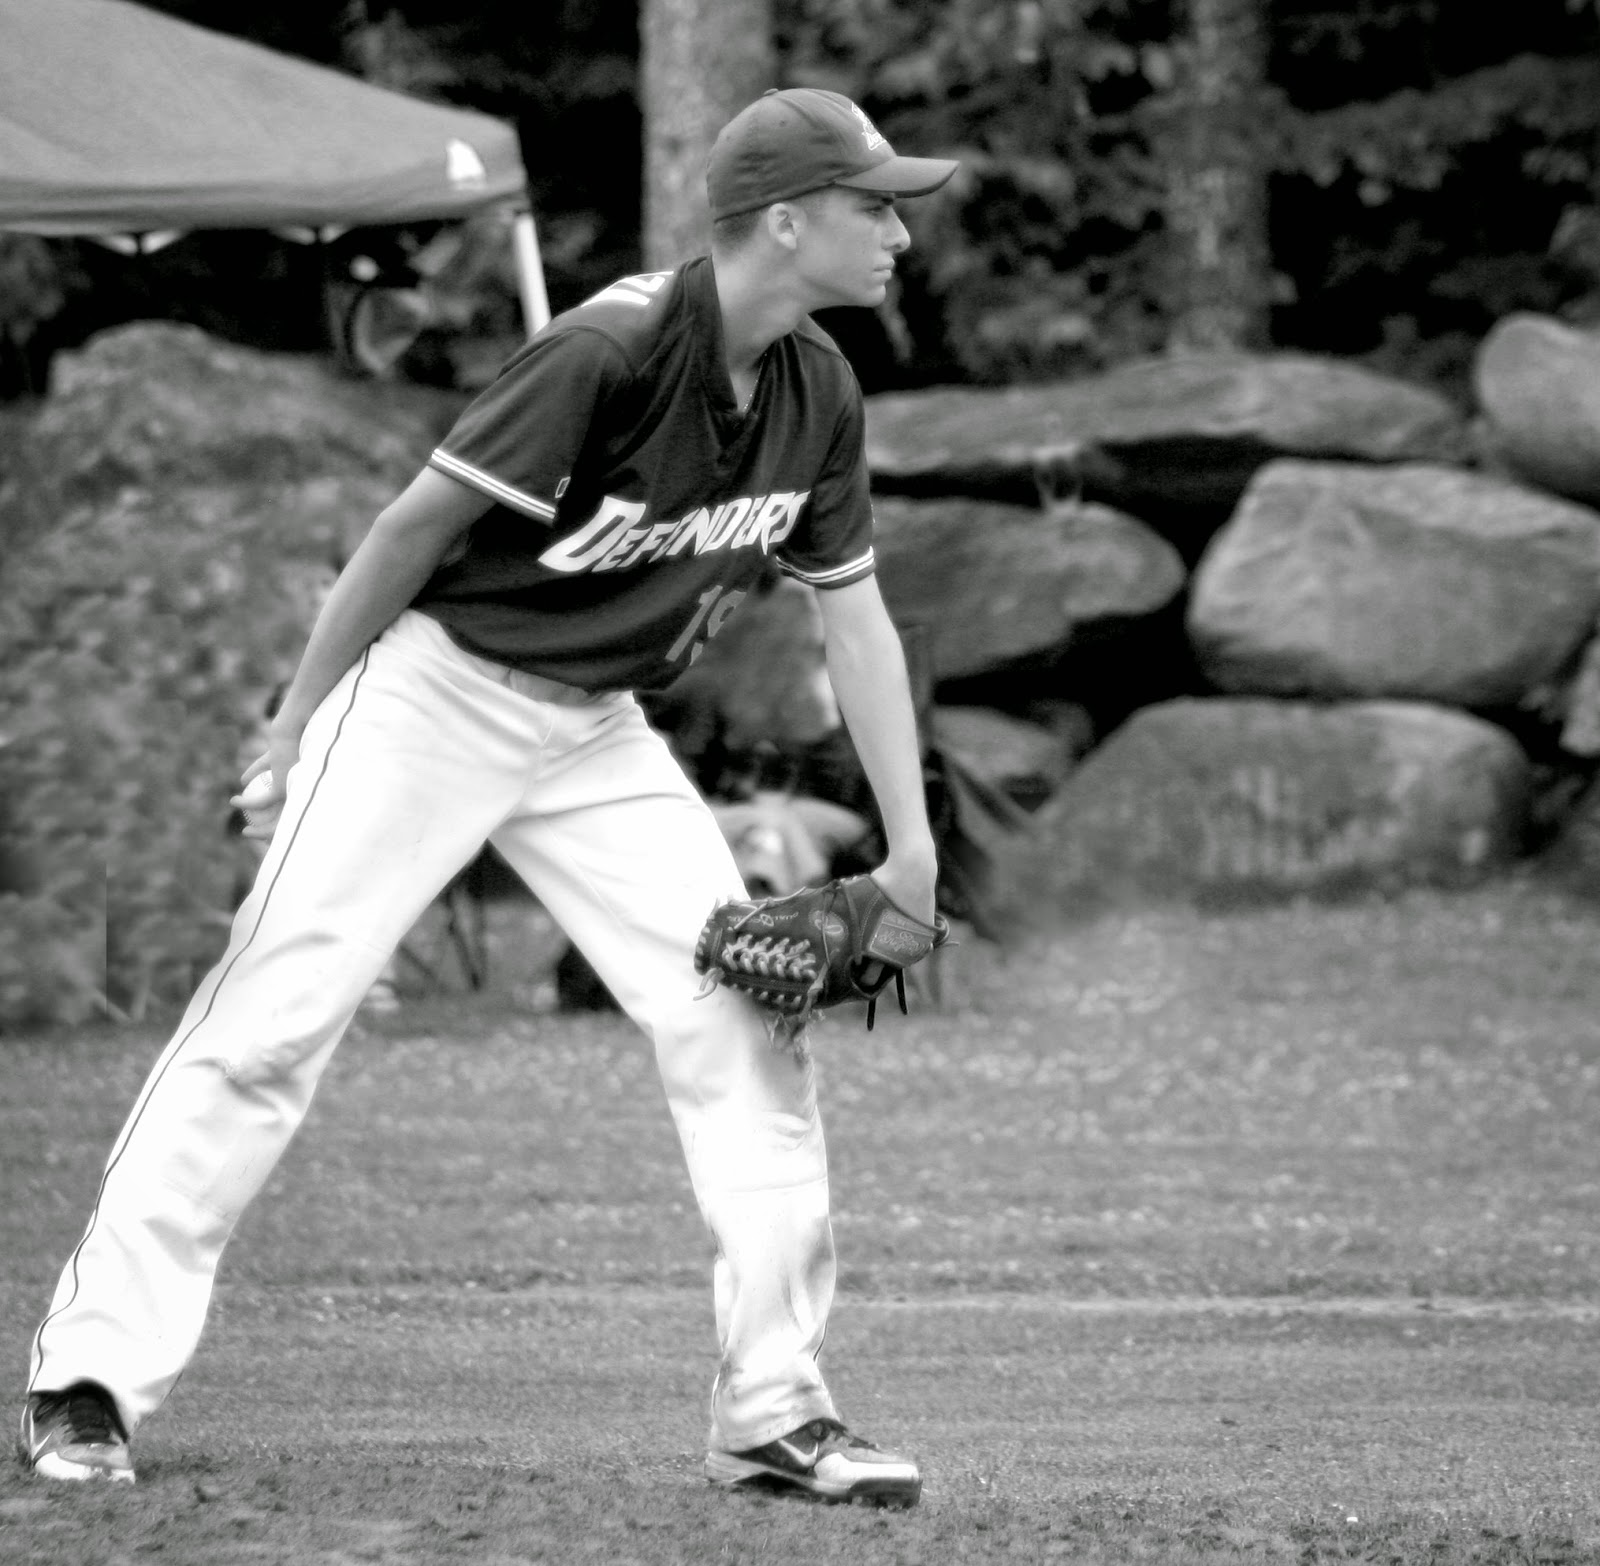 Baseball pitcher intense, focused on the game he is pitching